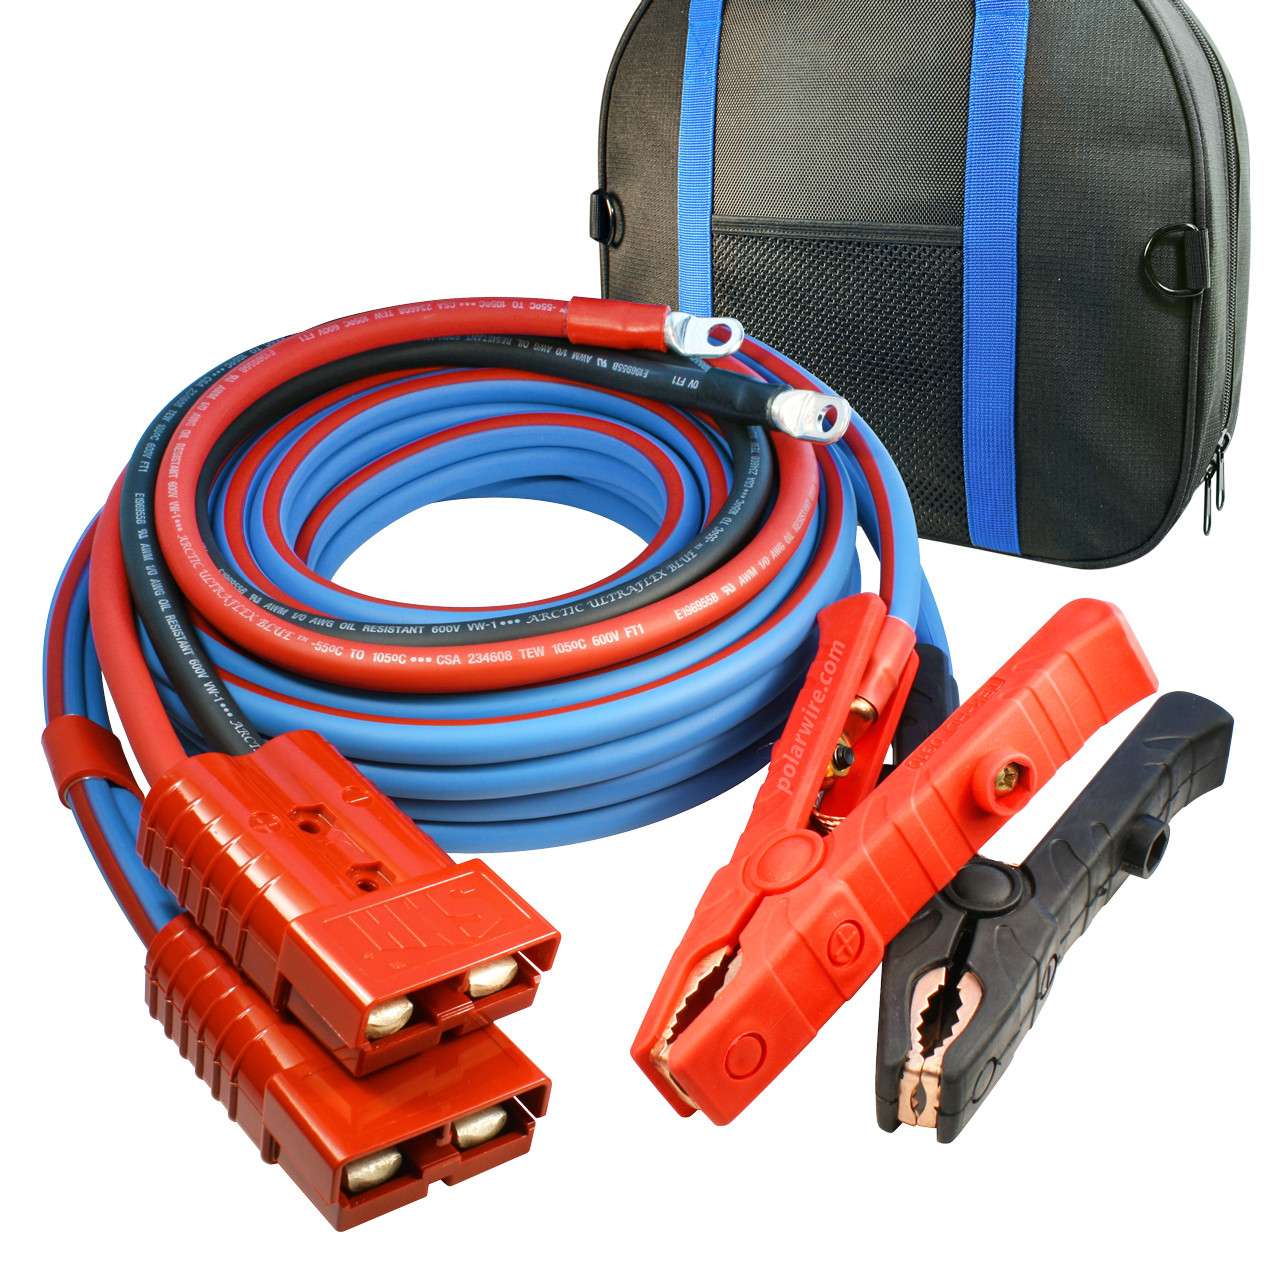 commercial heavy duty jumper cables